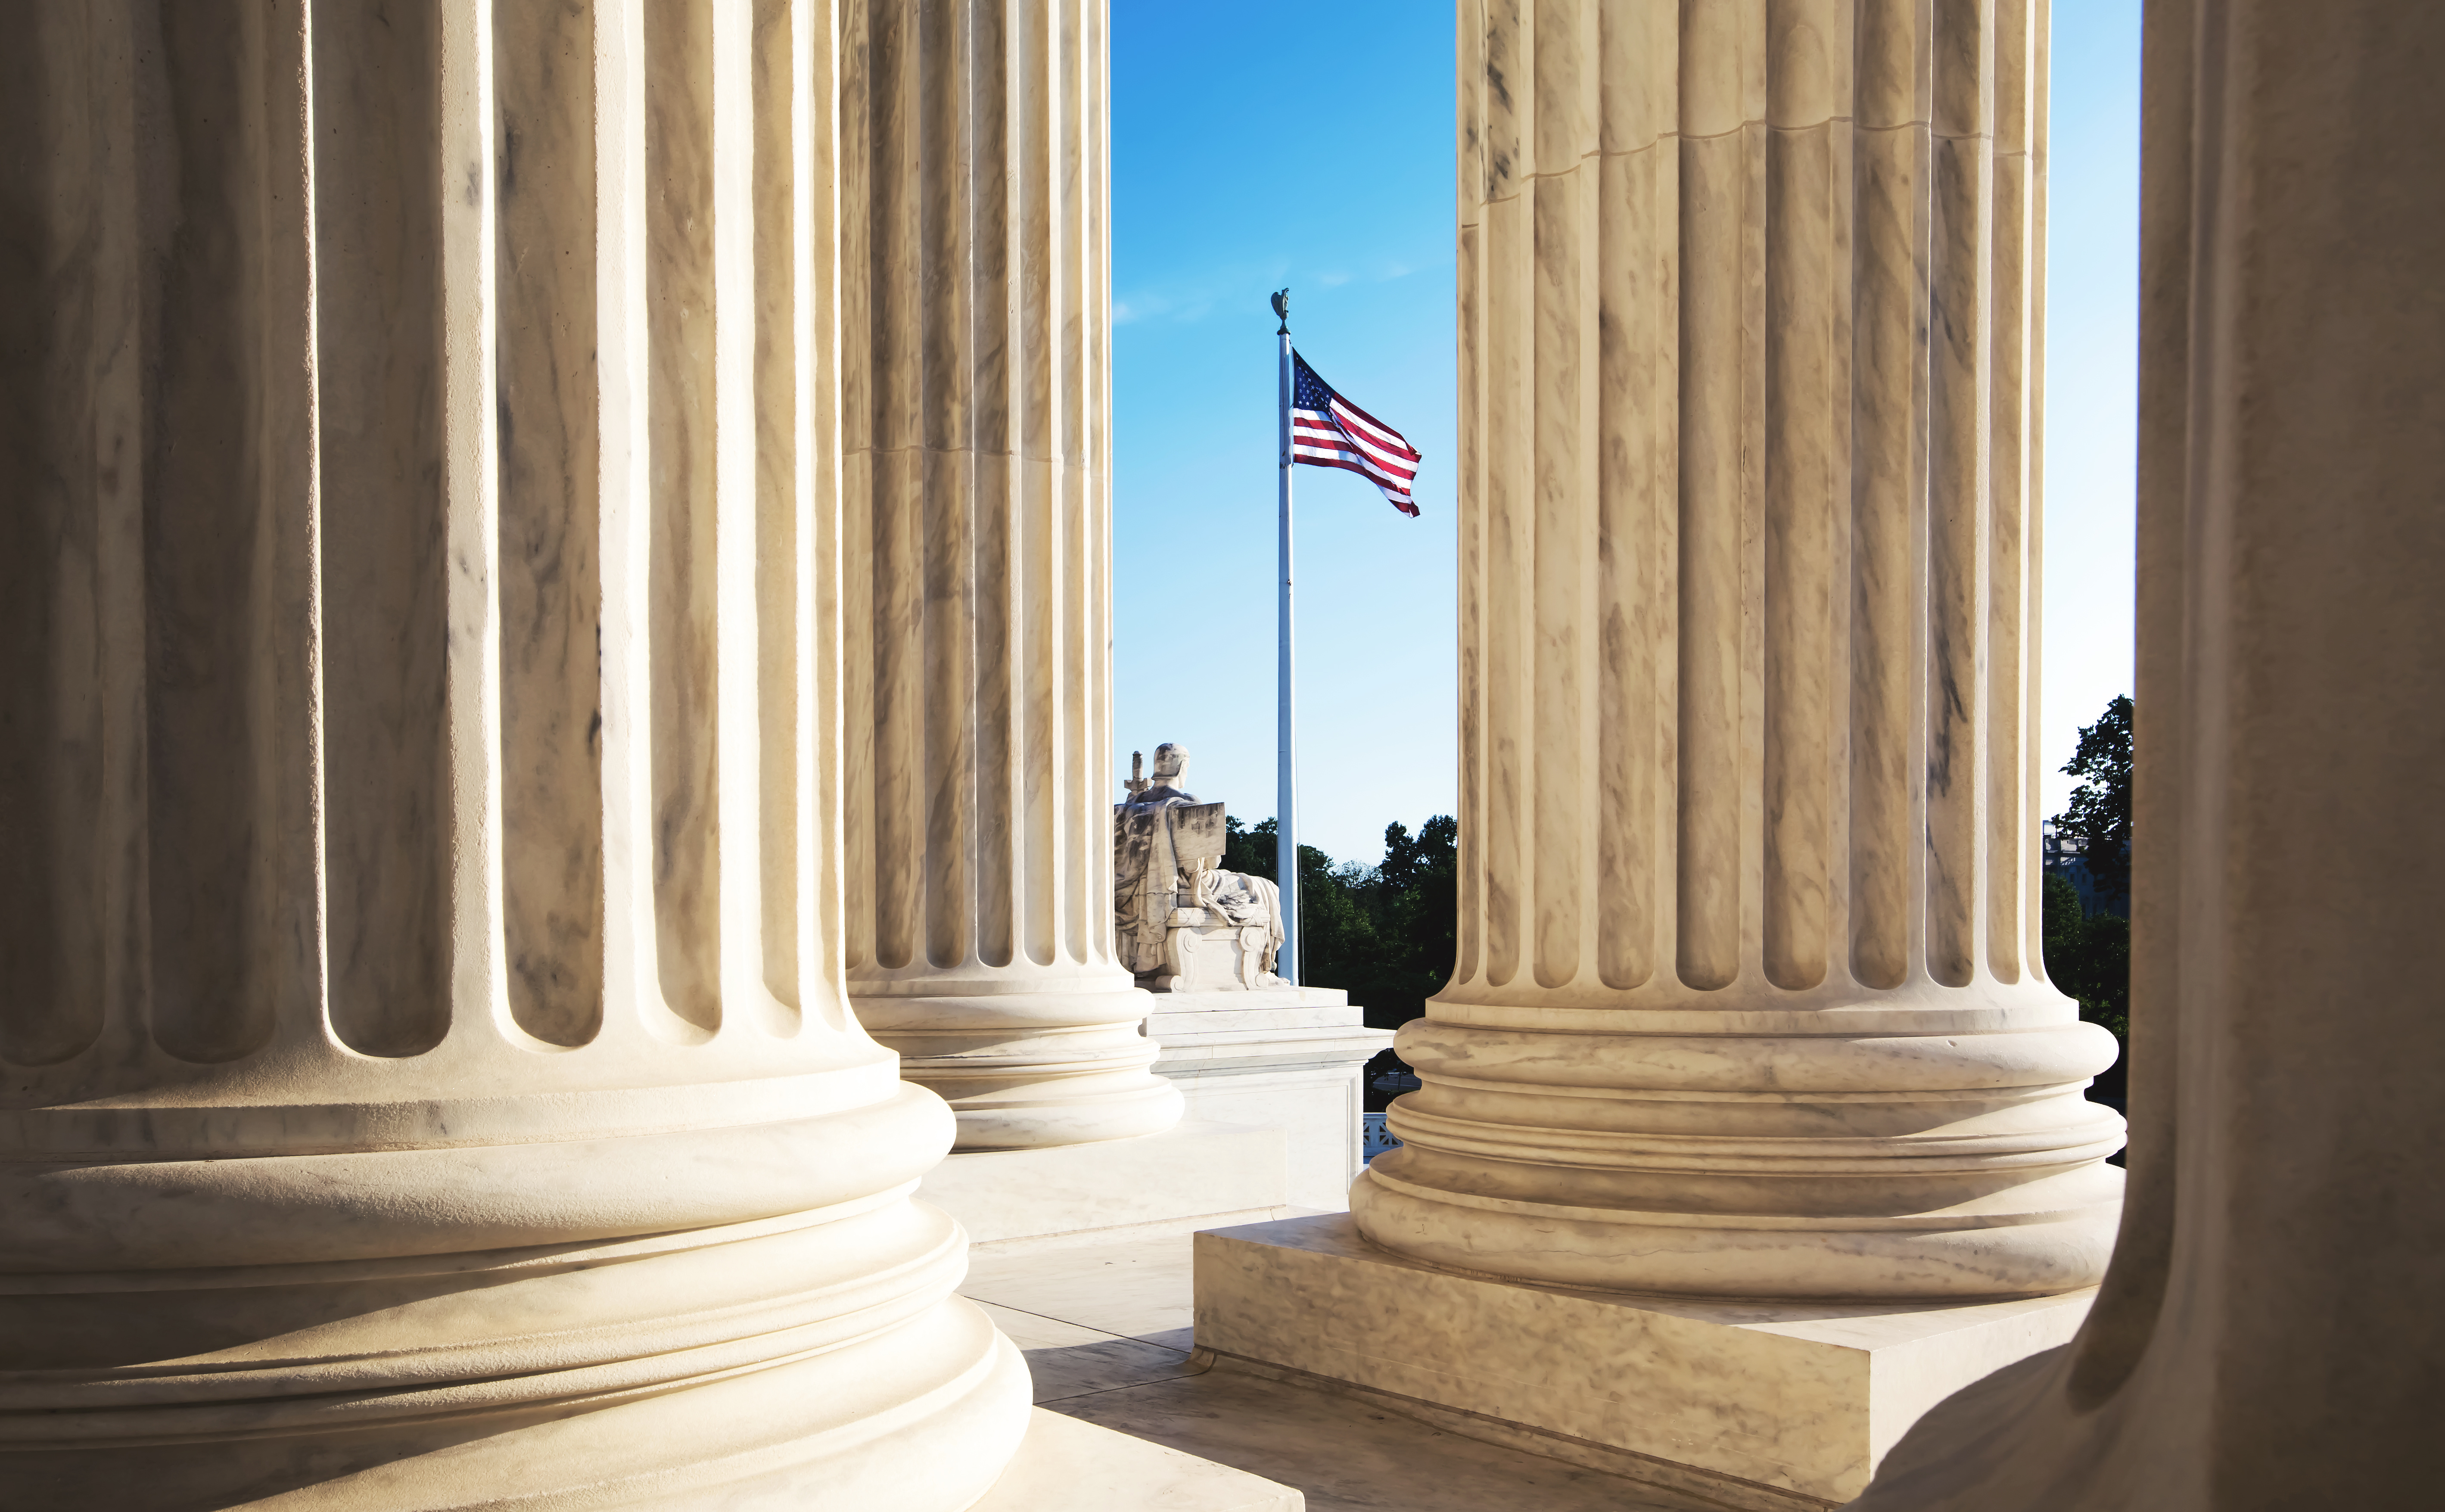 Click to play: 2020 Annual Supreme Court Round Up